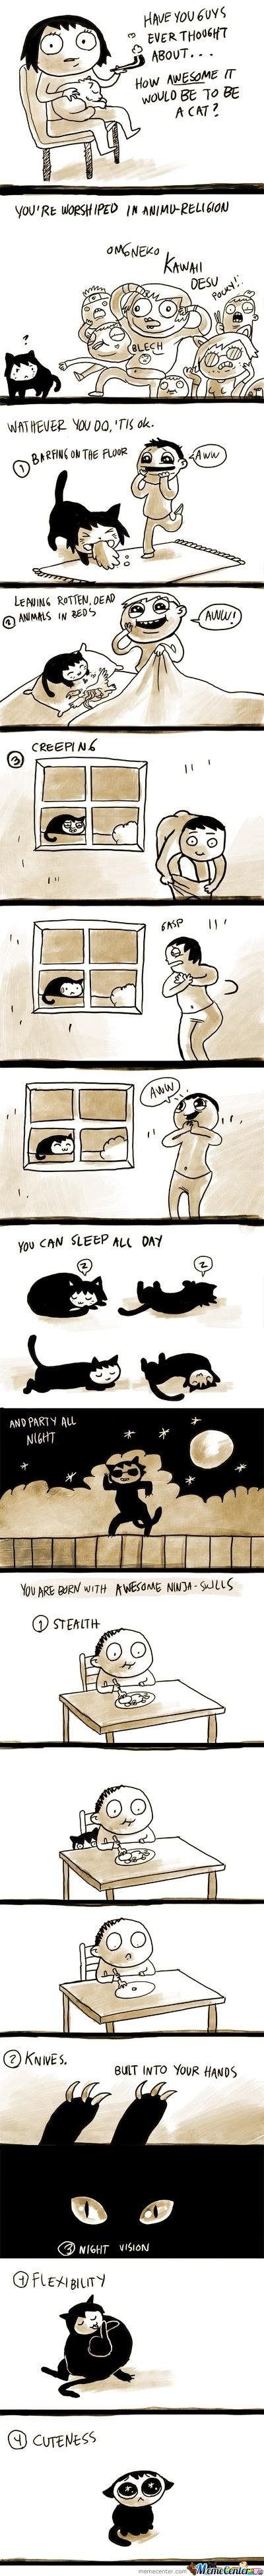 How Awesome It Would Be To Be A Cat